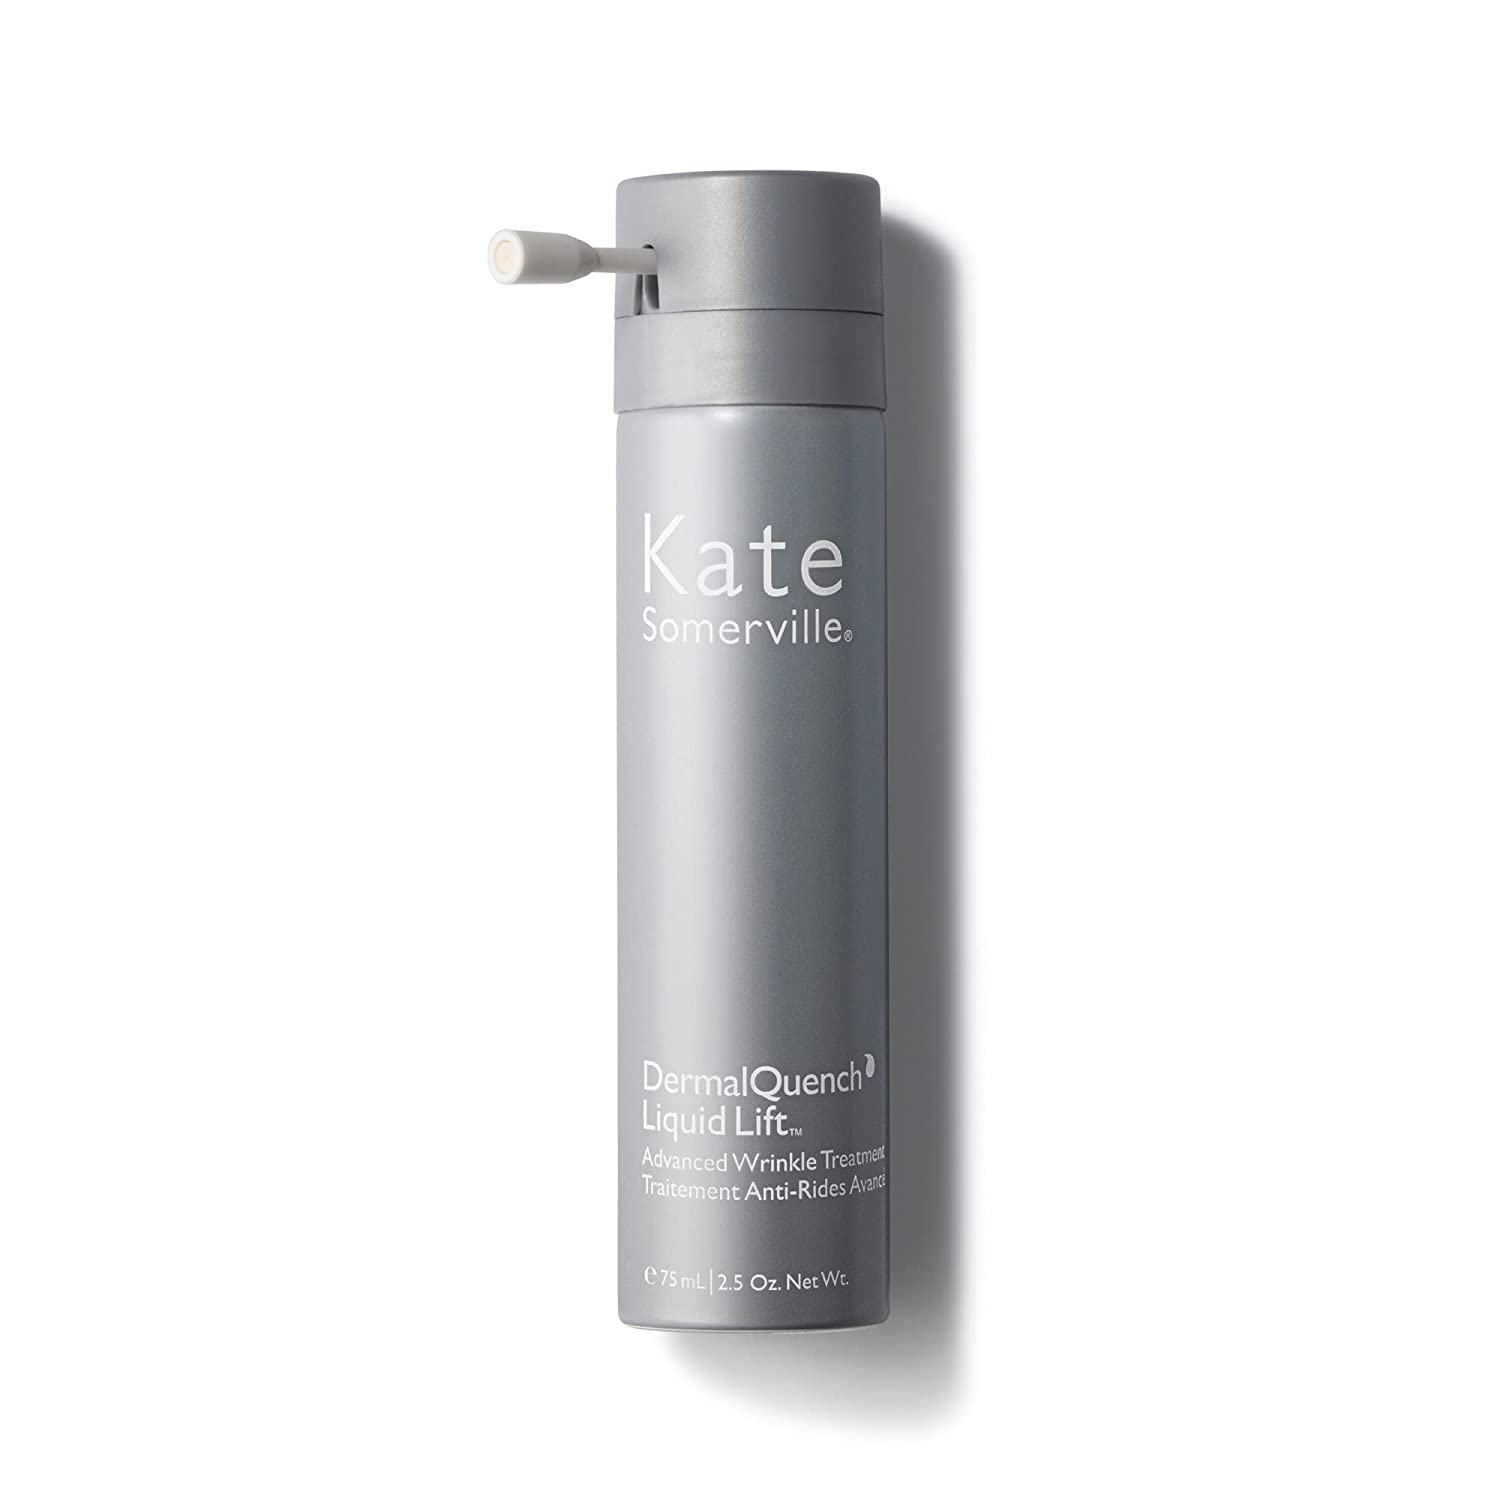 Kate Somerville DermalQuench Liquid Lift   Advanced Wrinkle Treatment   Deeply Hydrating Oxygen Facial